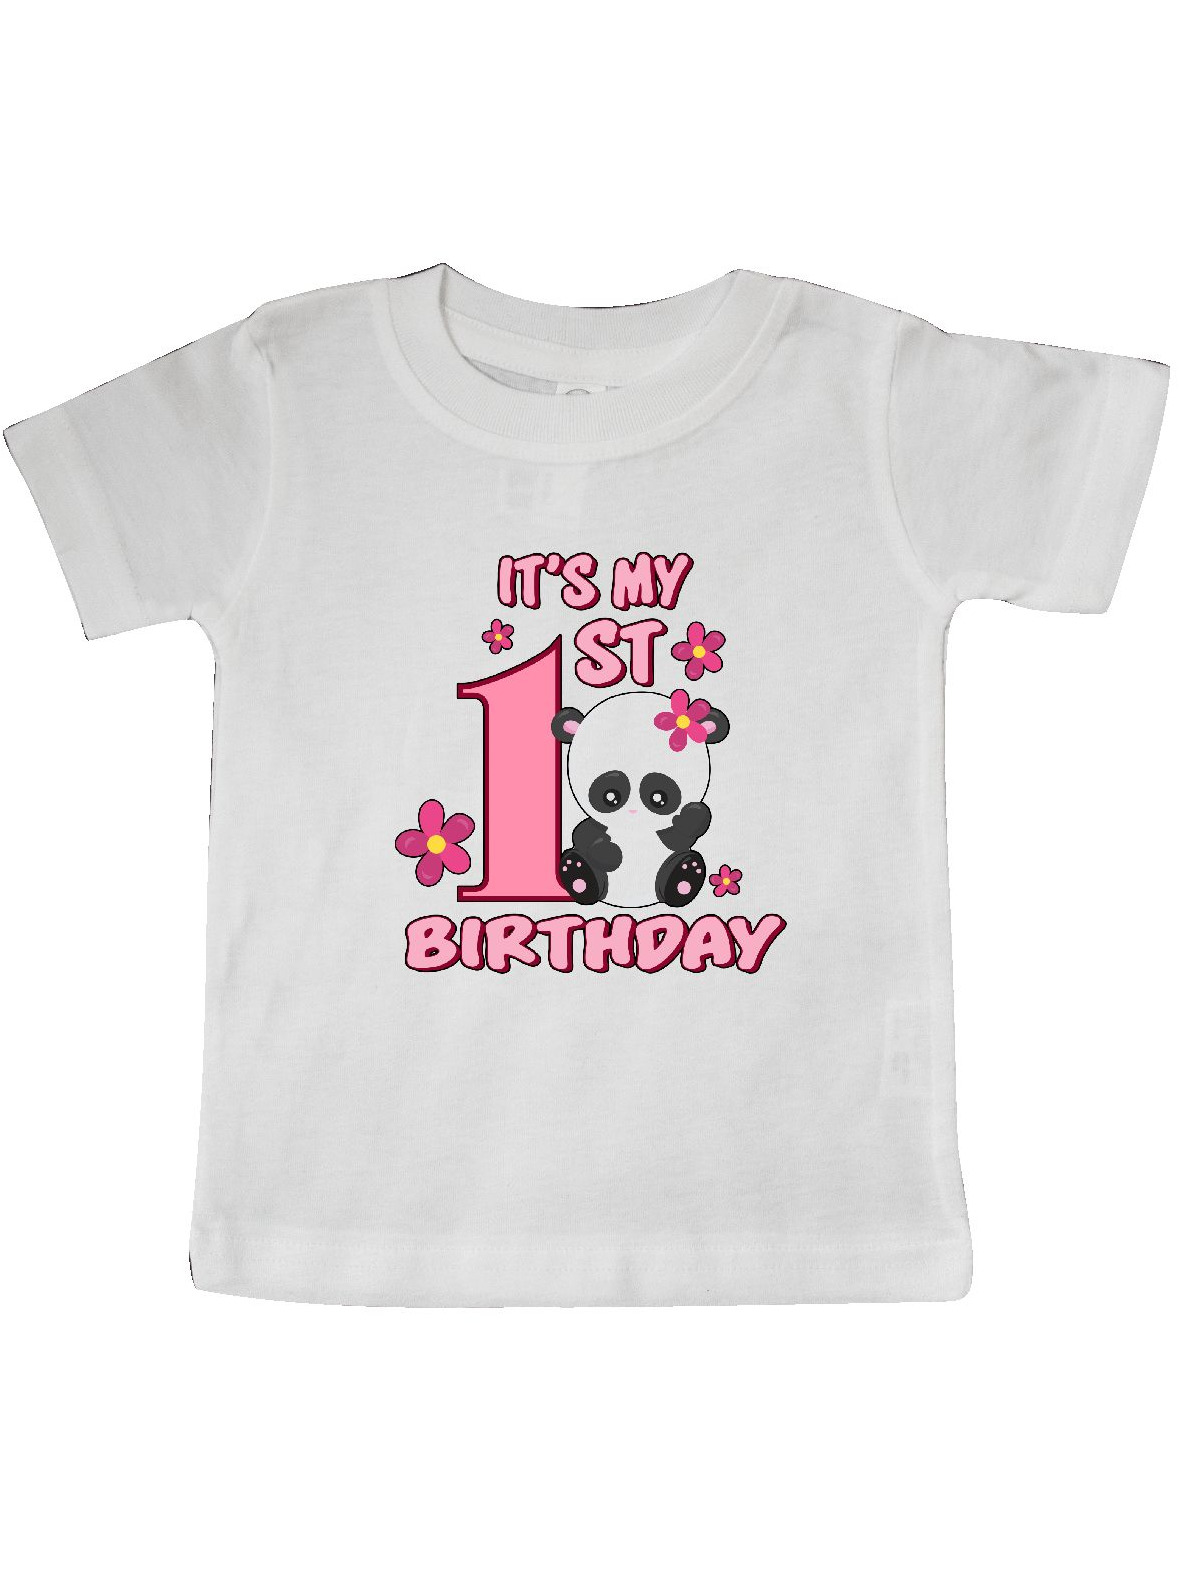 It's My First Birthday with Panda Bear Baby T-Shirt